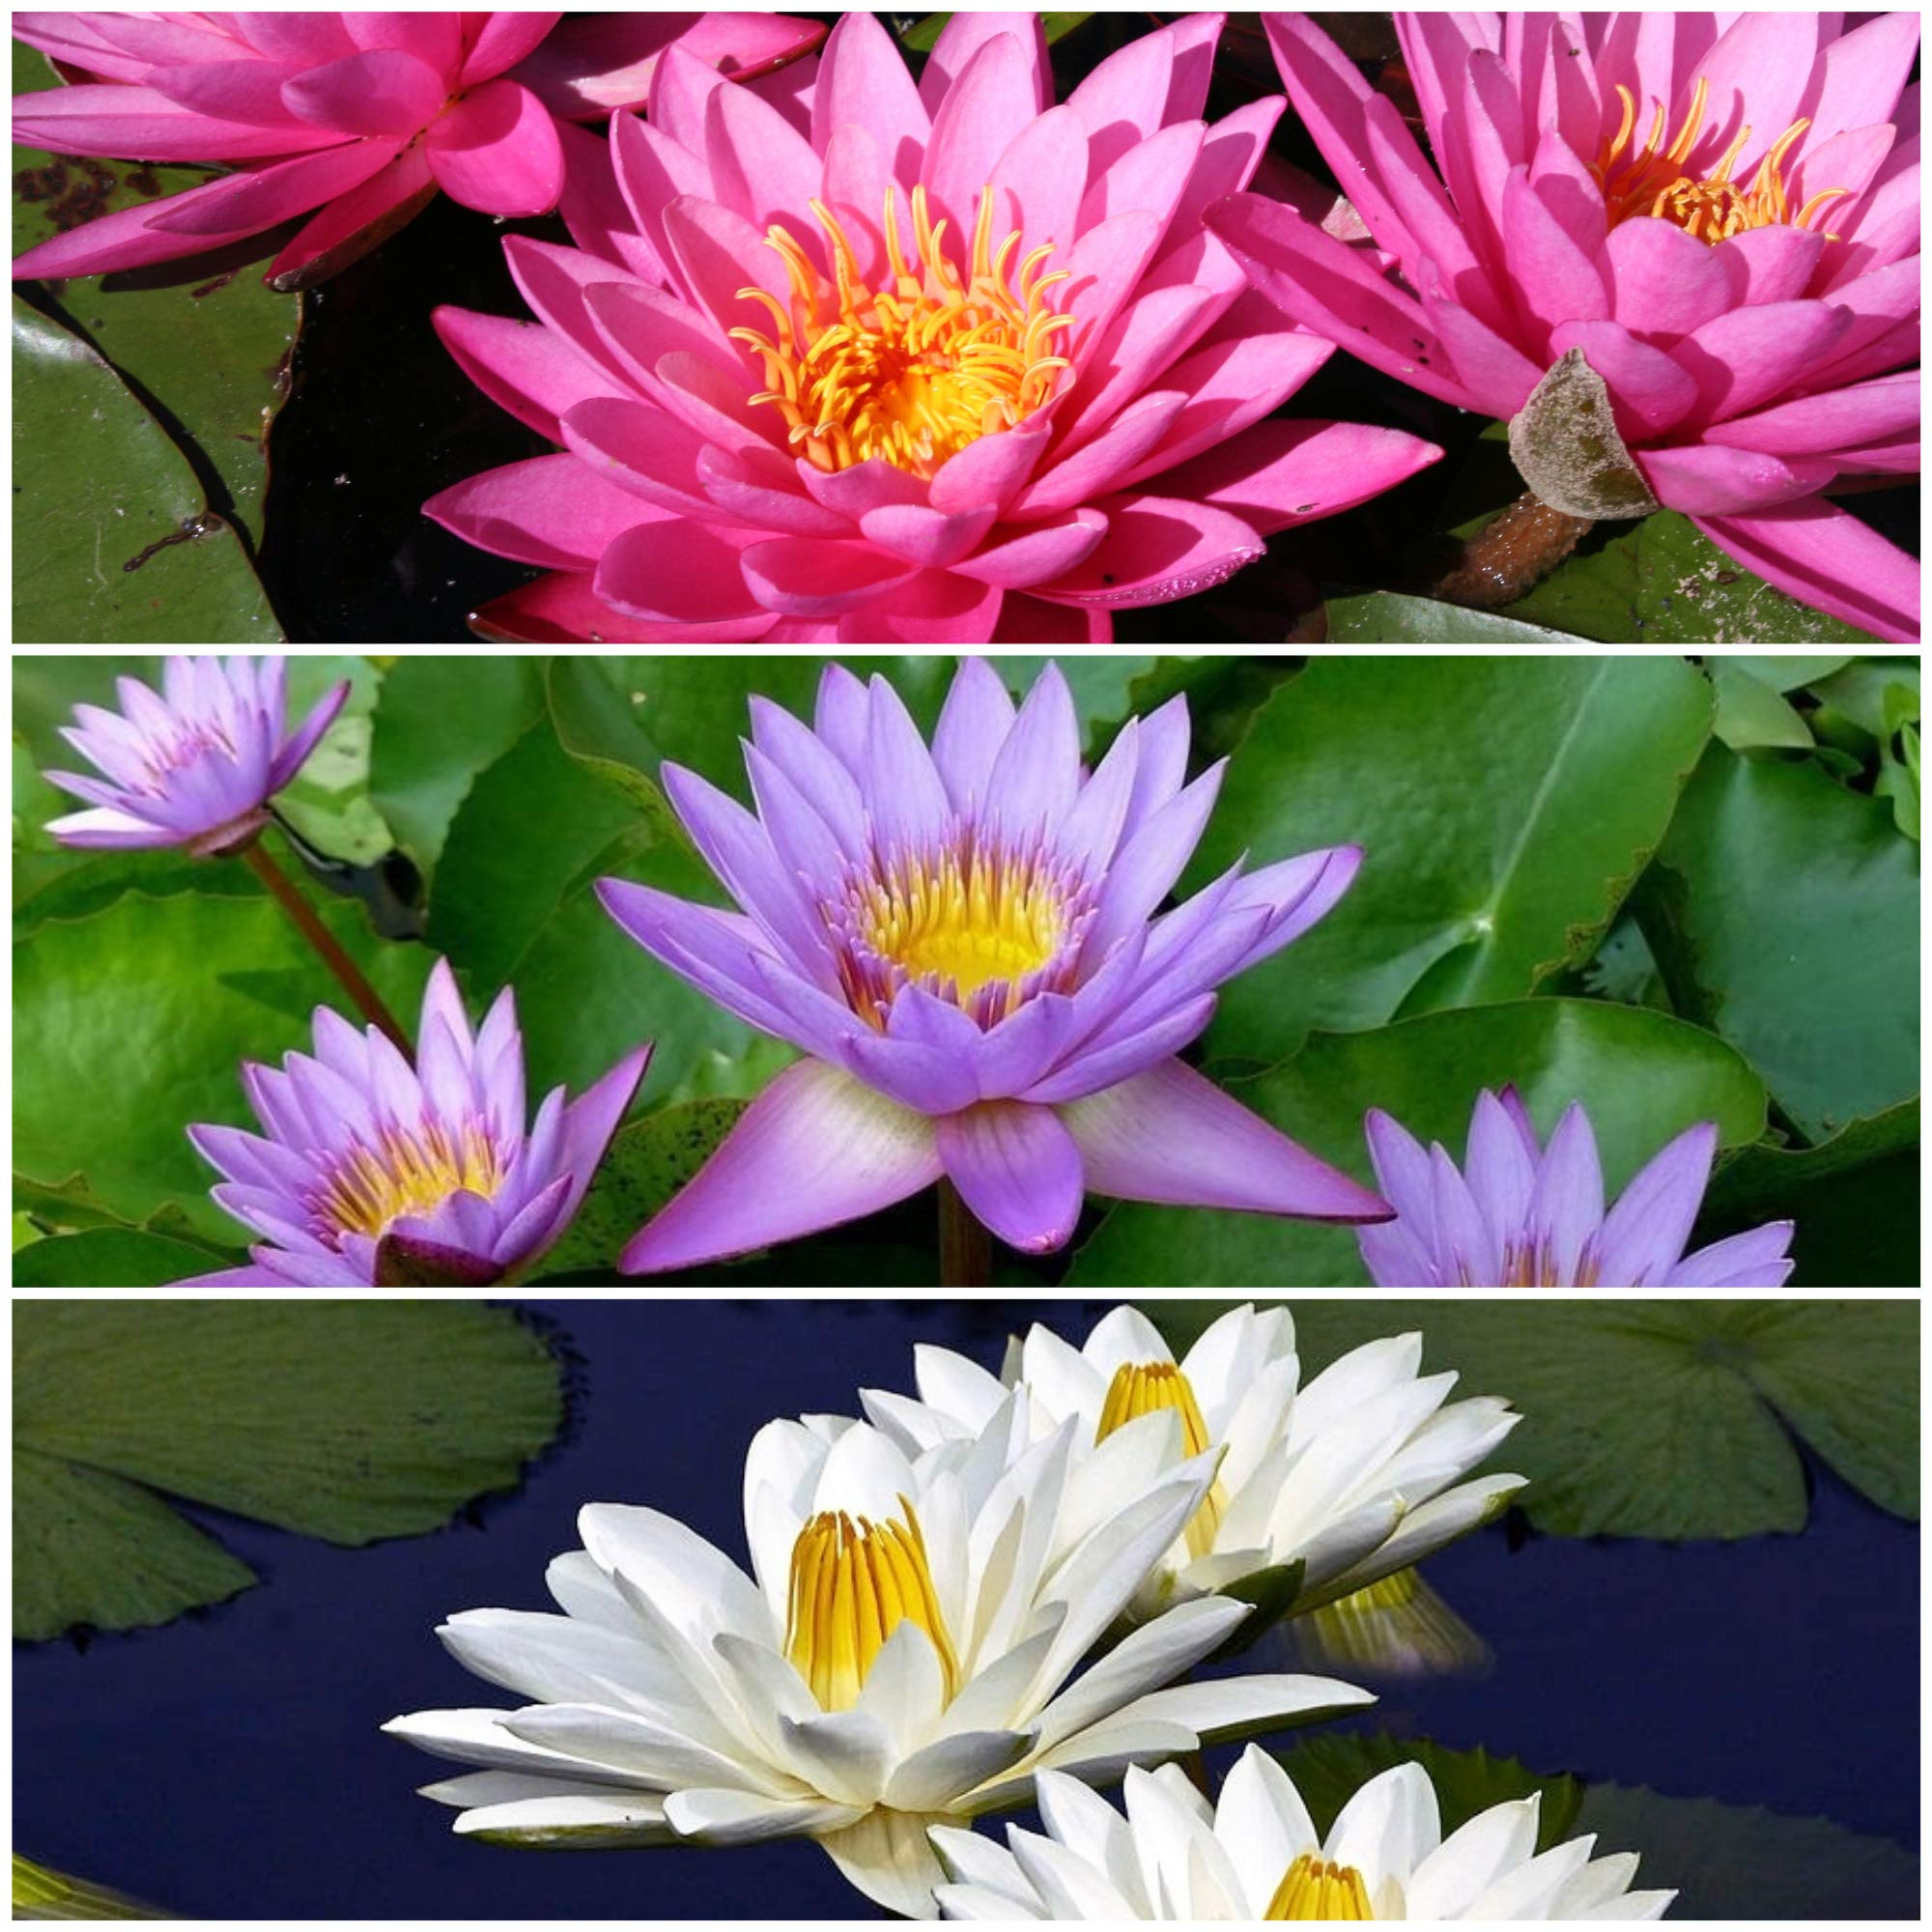 Tropical Water Lily Bundle - 3 Pre-Grown Rhizomes in White, Red, and Purple by AquaLeaf Aquatics (Image #1)